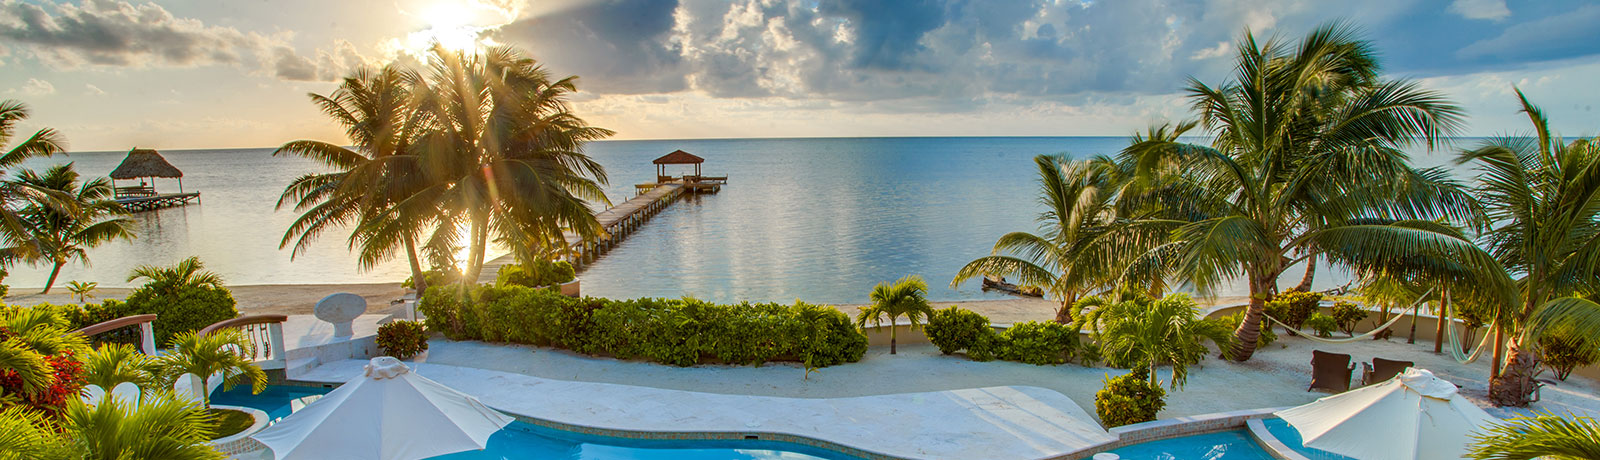 Luxury Beachfront Vacation Rental in Belize